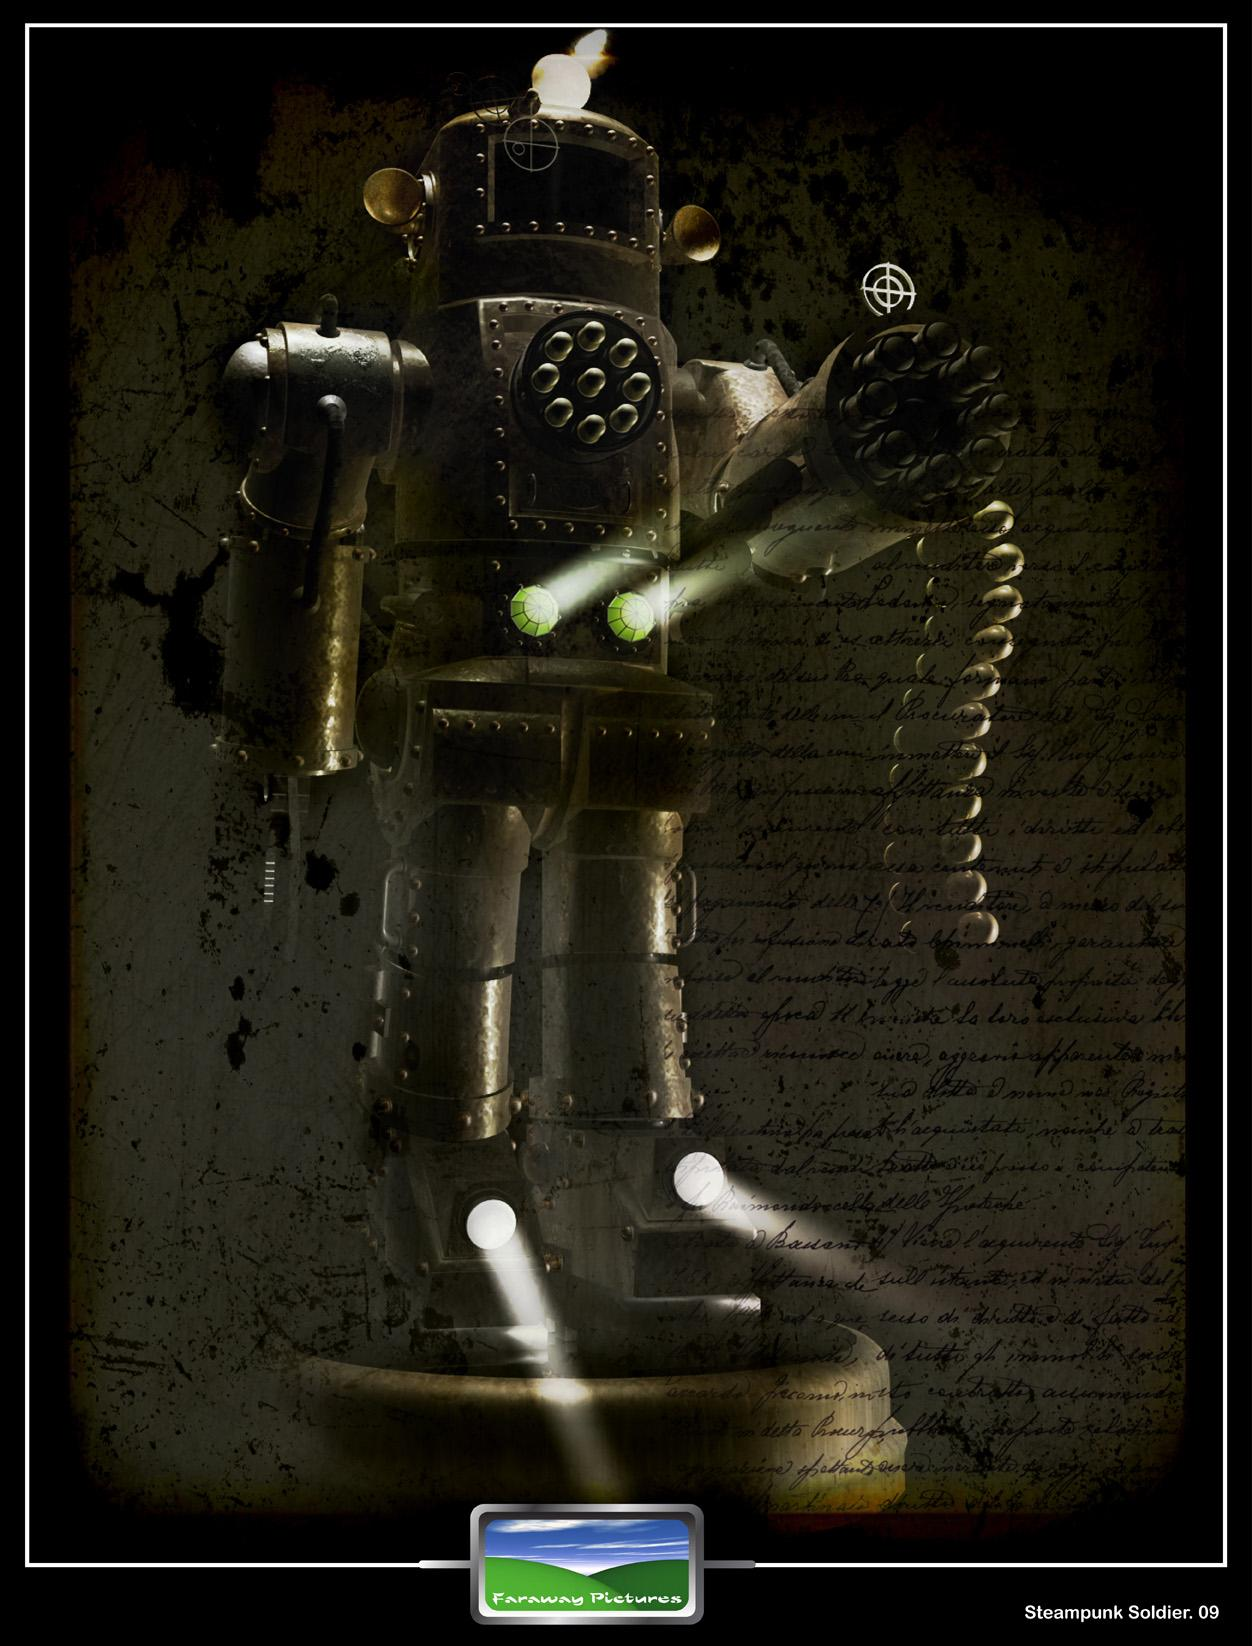 Steampunk Soldier (Textured)